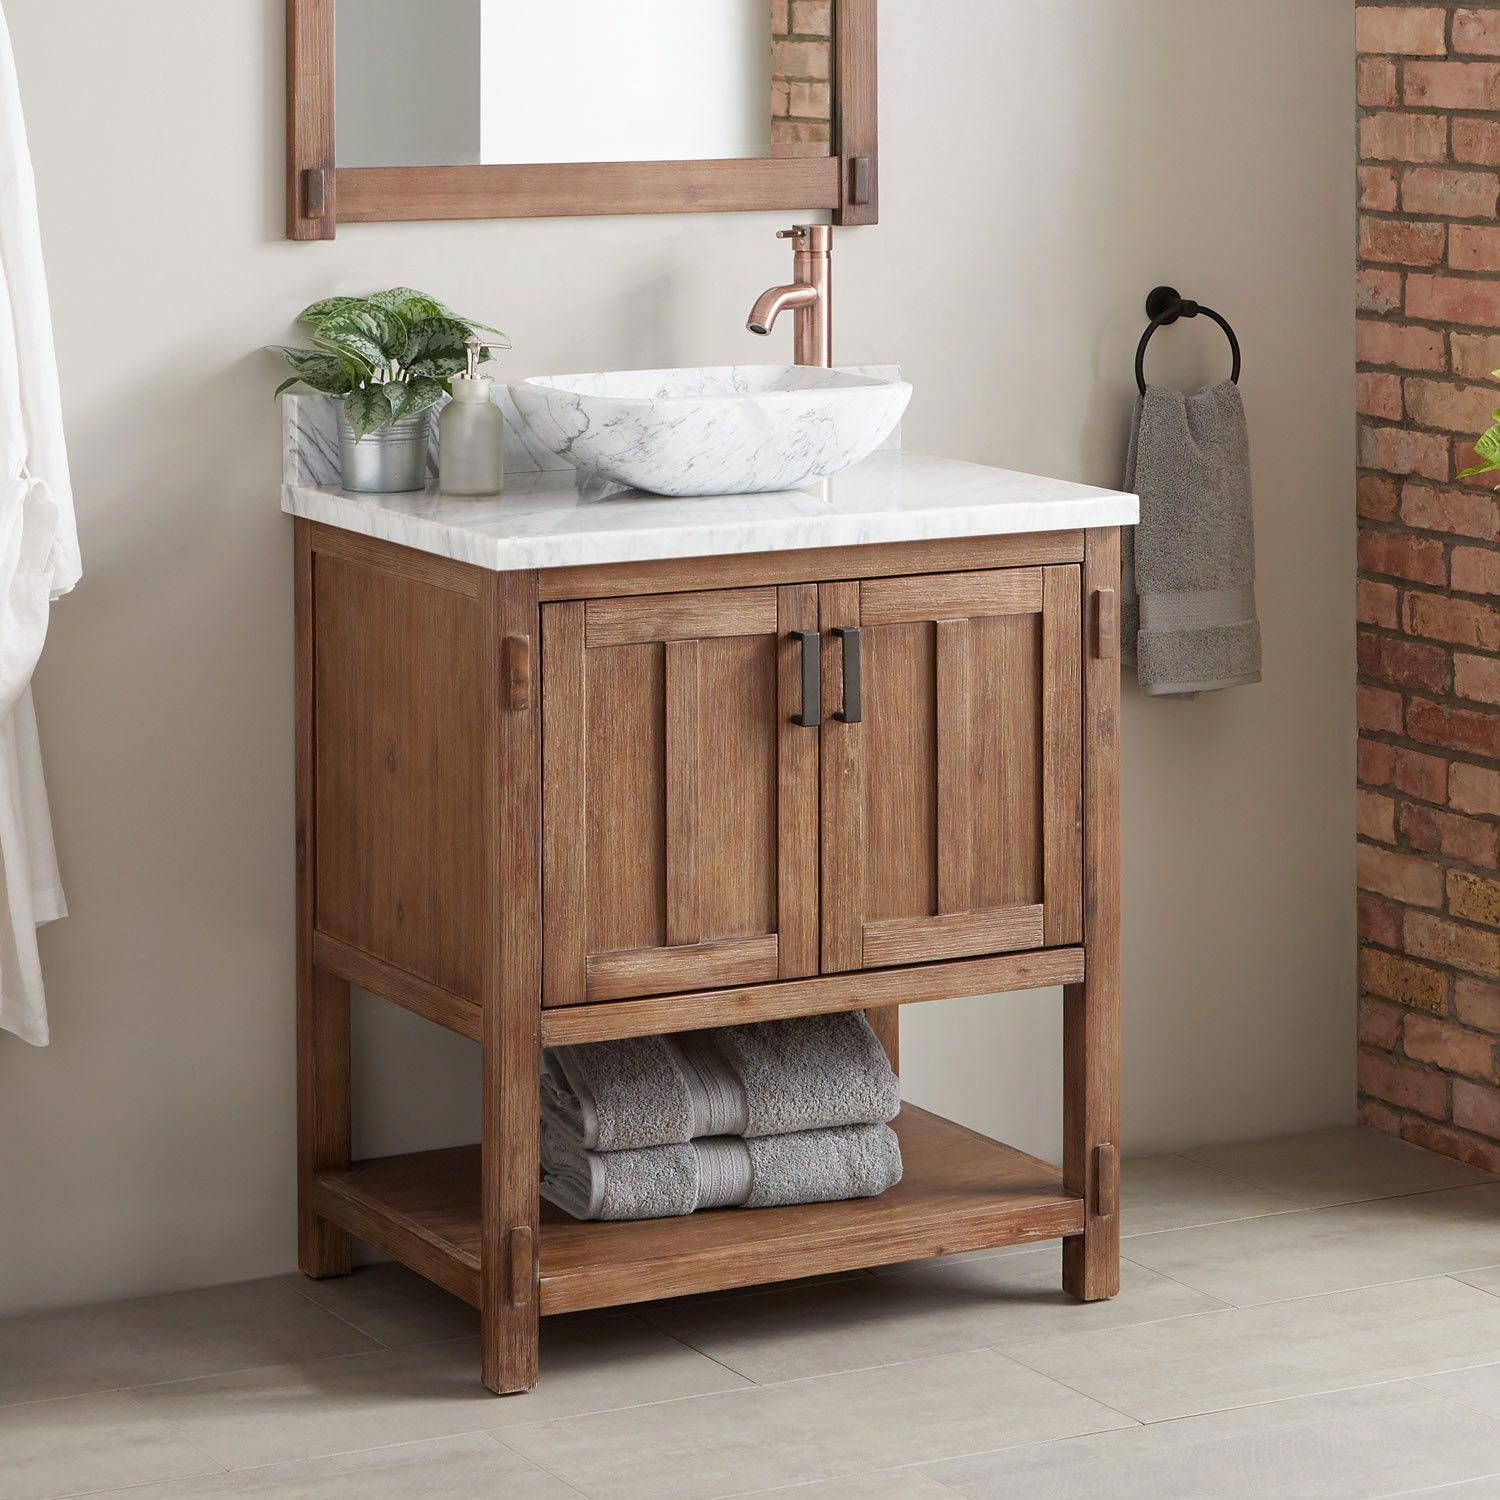 30 Morris Console Vessel Sink Vanity Vessel Sink Vanities Bathroom Vanities Bathroom Bathroom In 2020 Single Bathroom Vanity Vessel Sink Vanity Bathroom Design